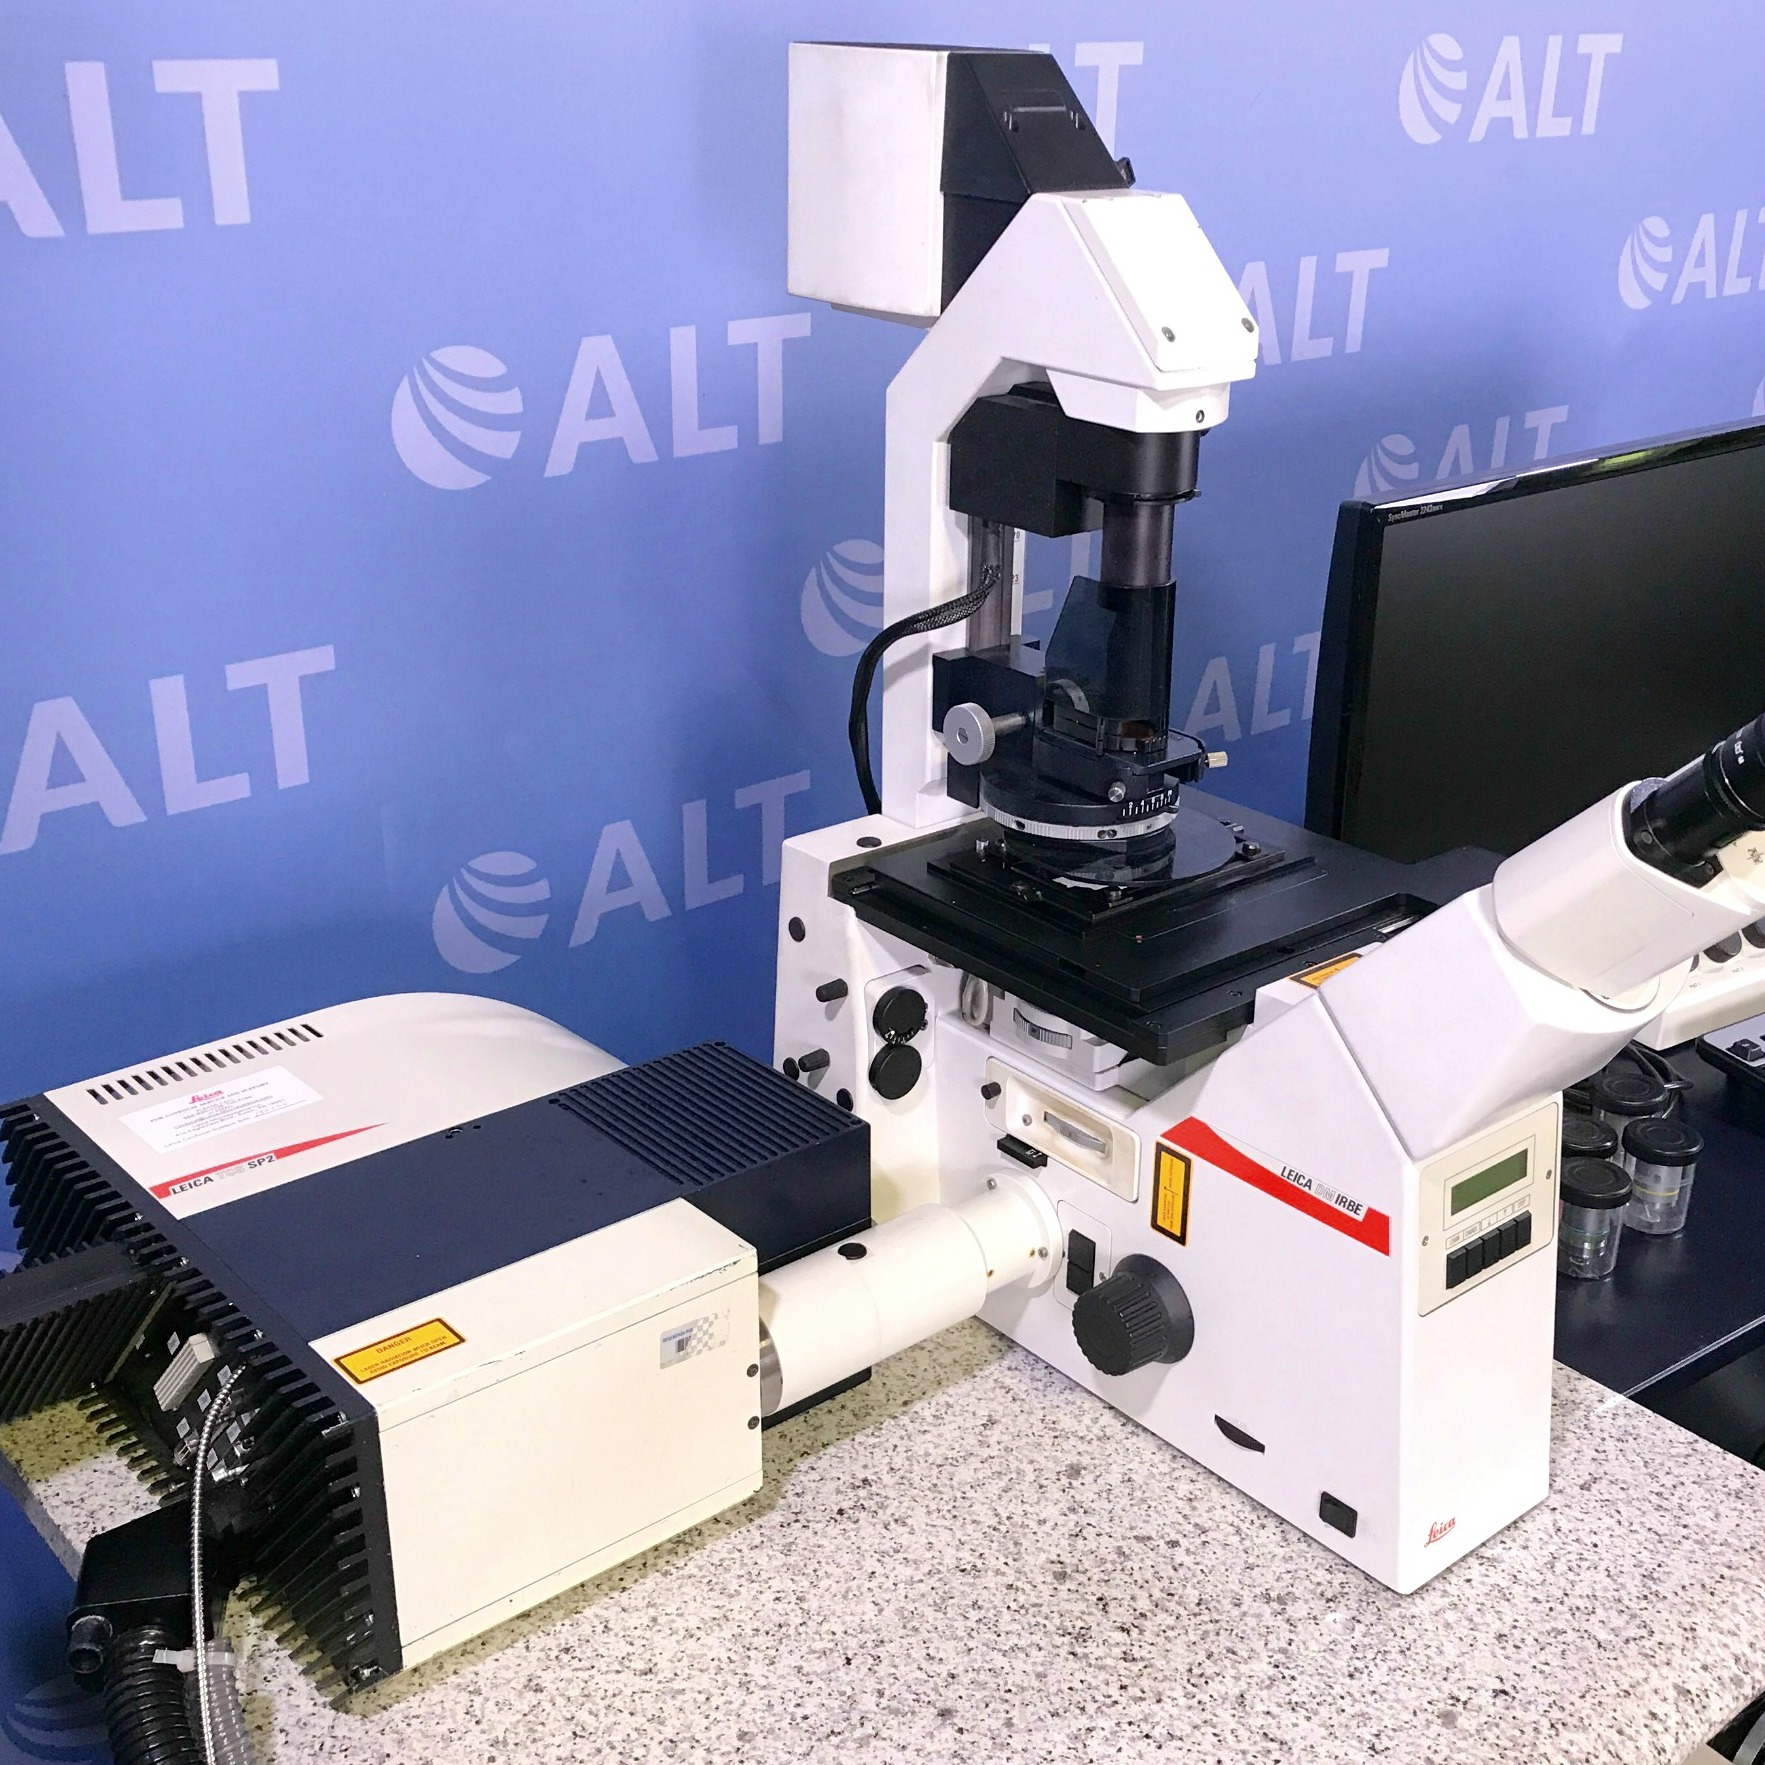 Leica TCS SP2 True Confocal Scanner System Image